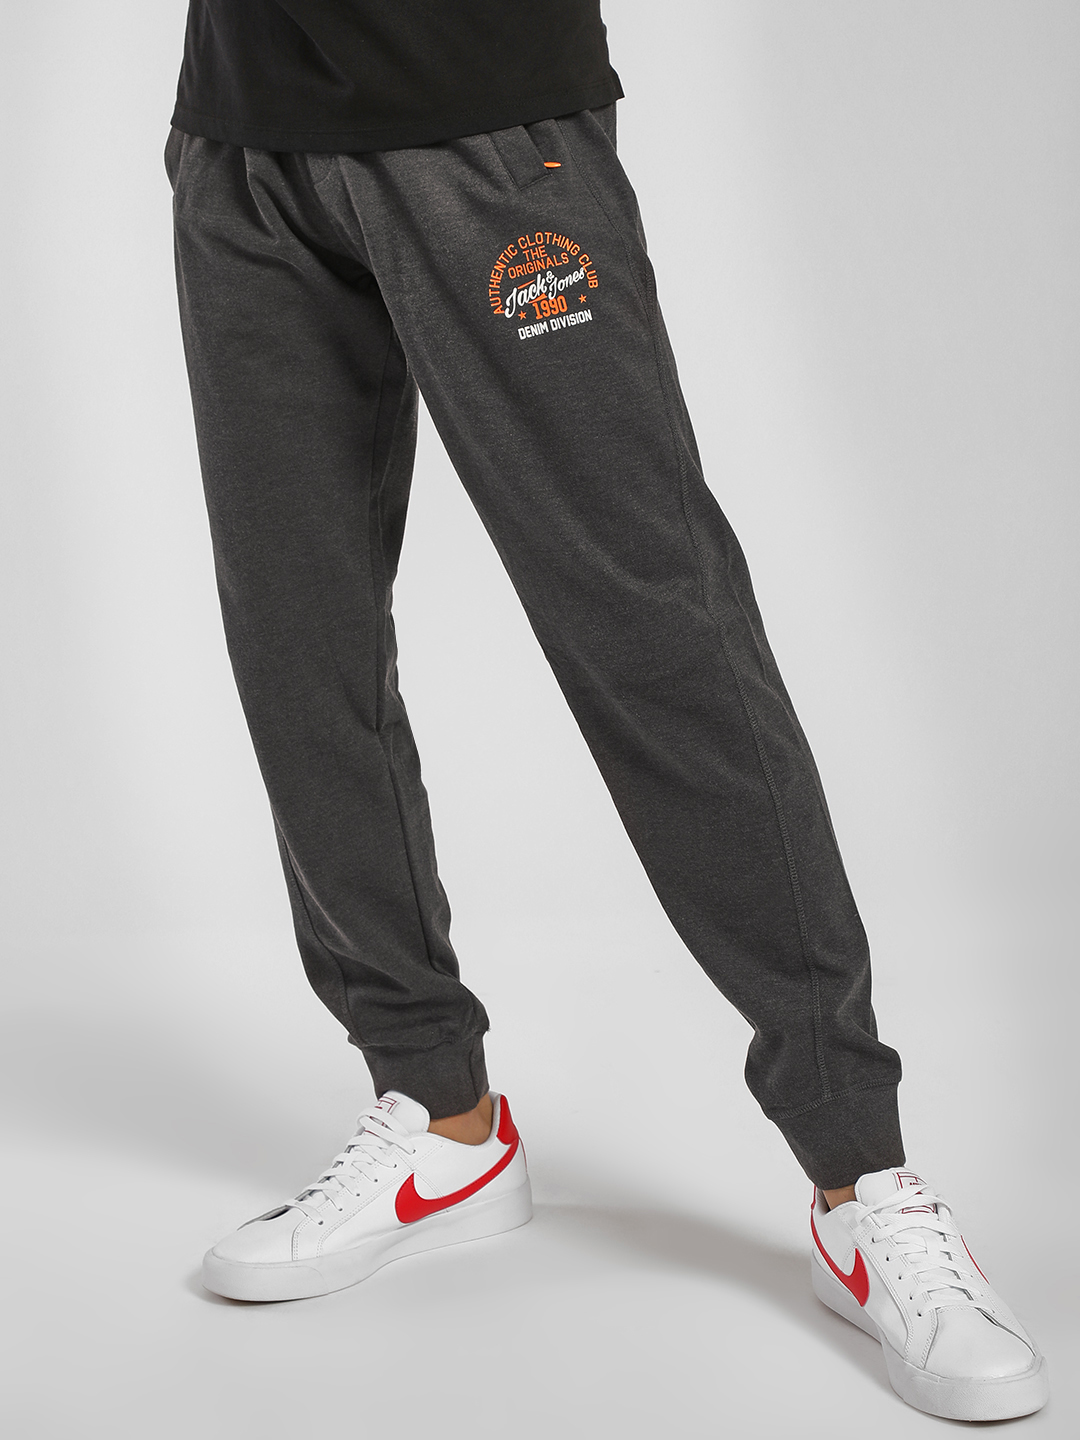 Jack & Jones Grey Knitted Joggers 1